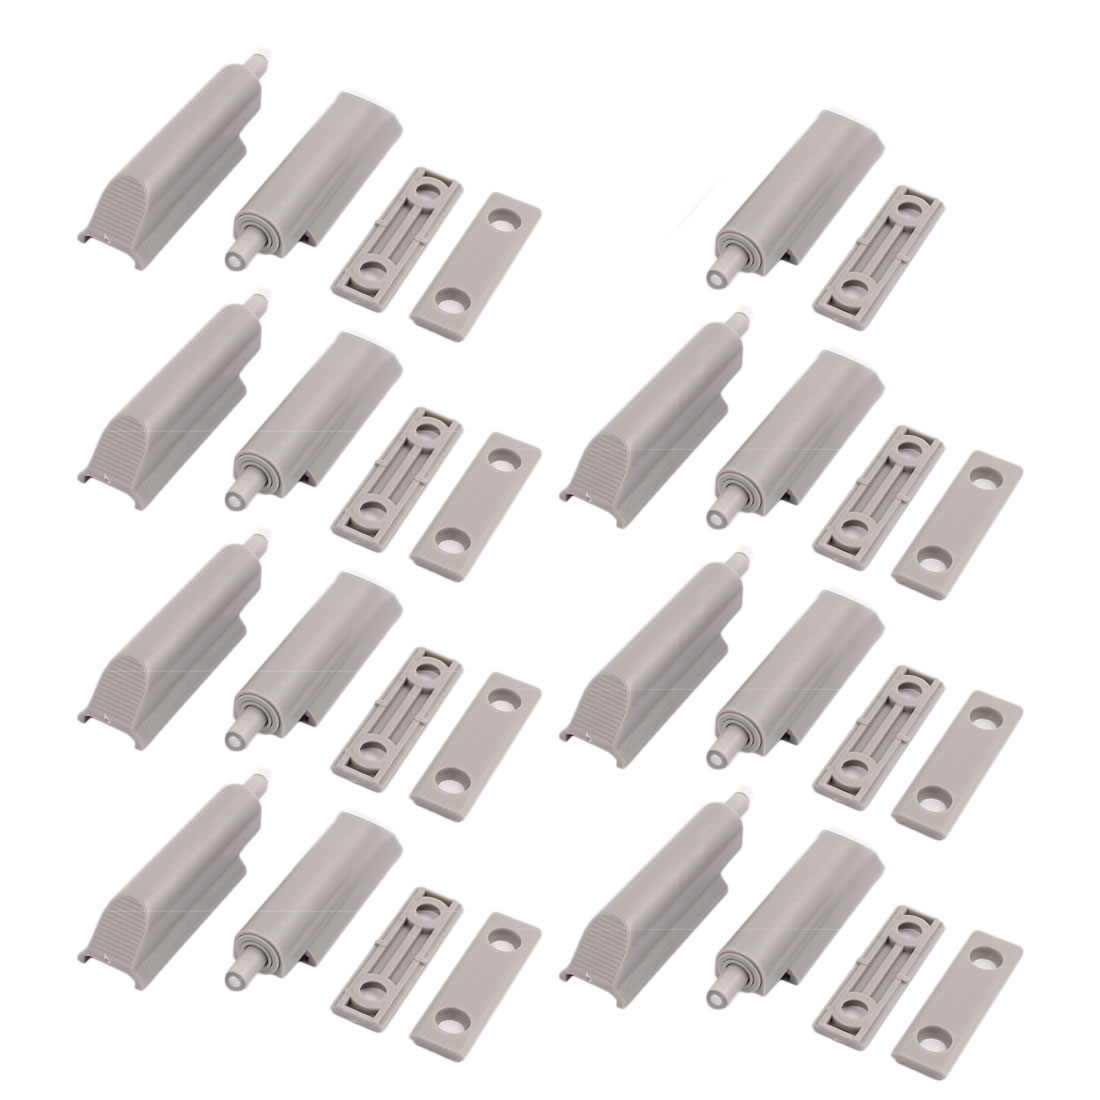 Cupboard Cabinet Drawer Plastic Damper Bumper Closer Buffer Gray 15pcs